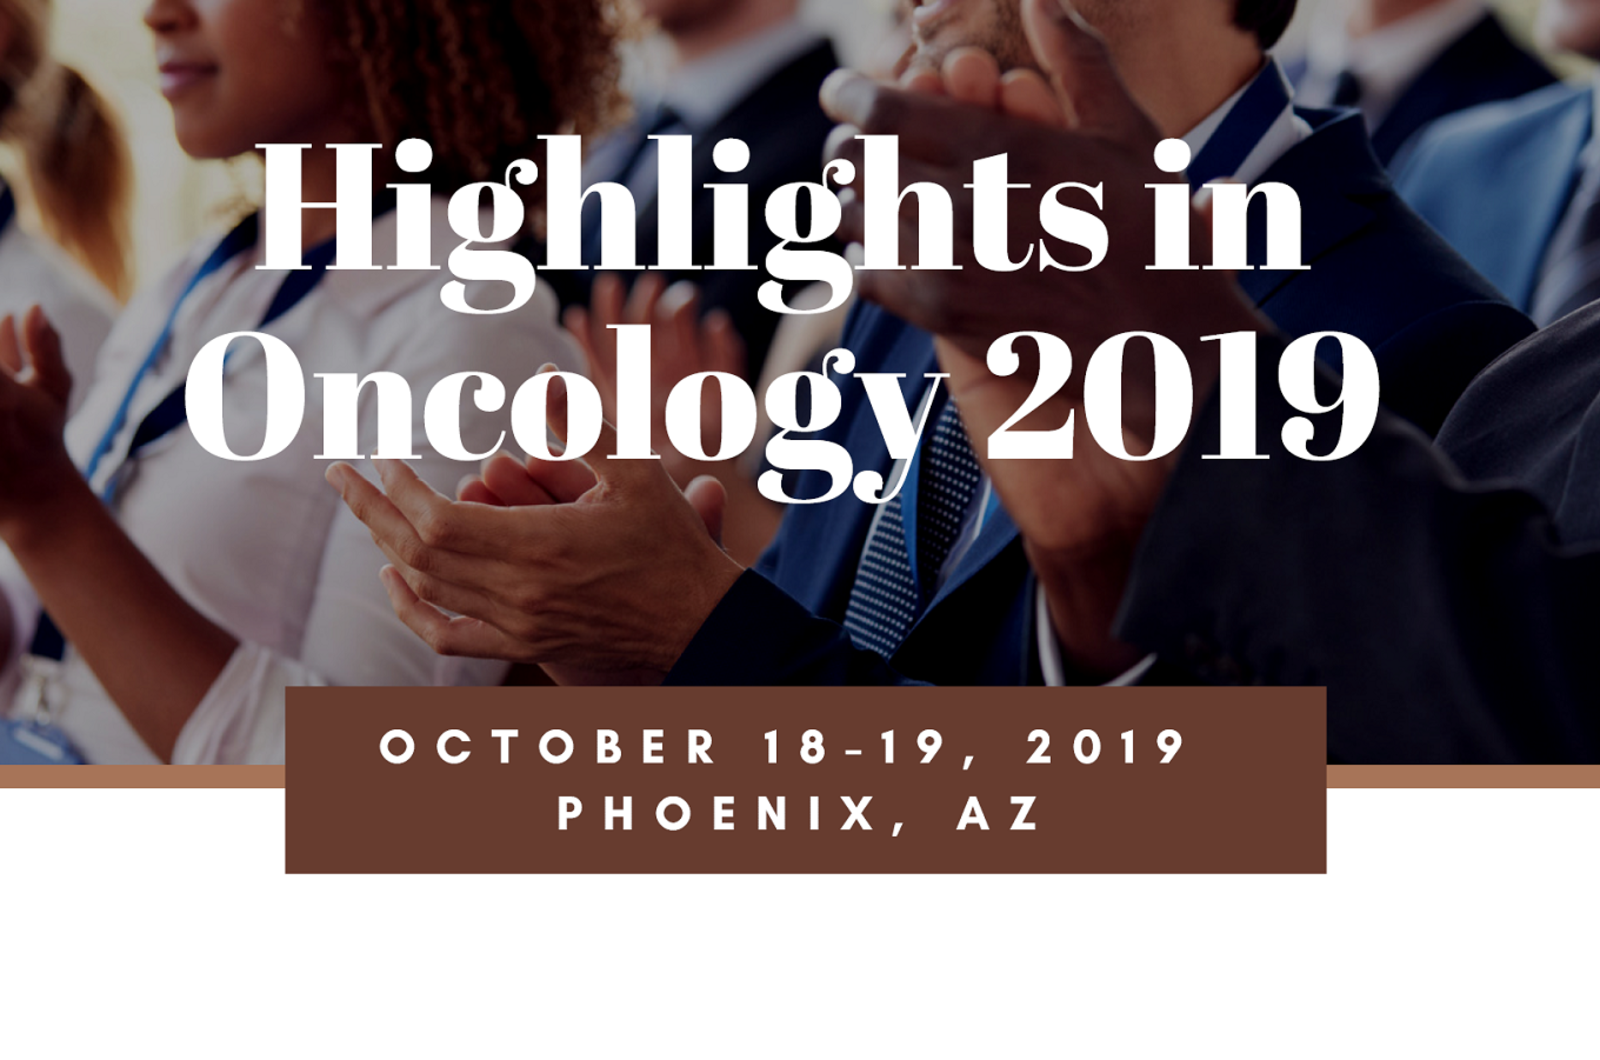 Highlights in Oncology Phoenix